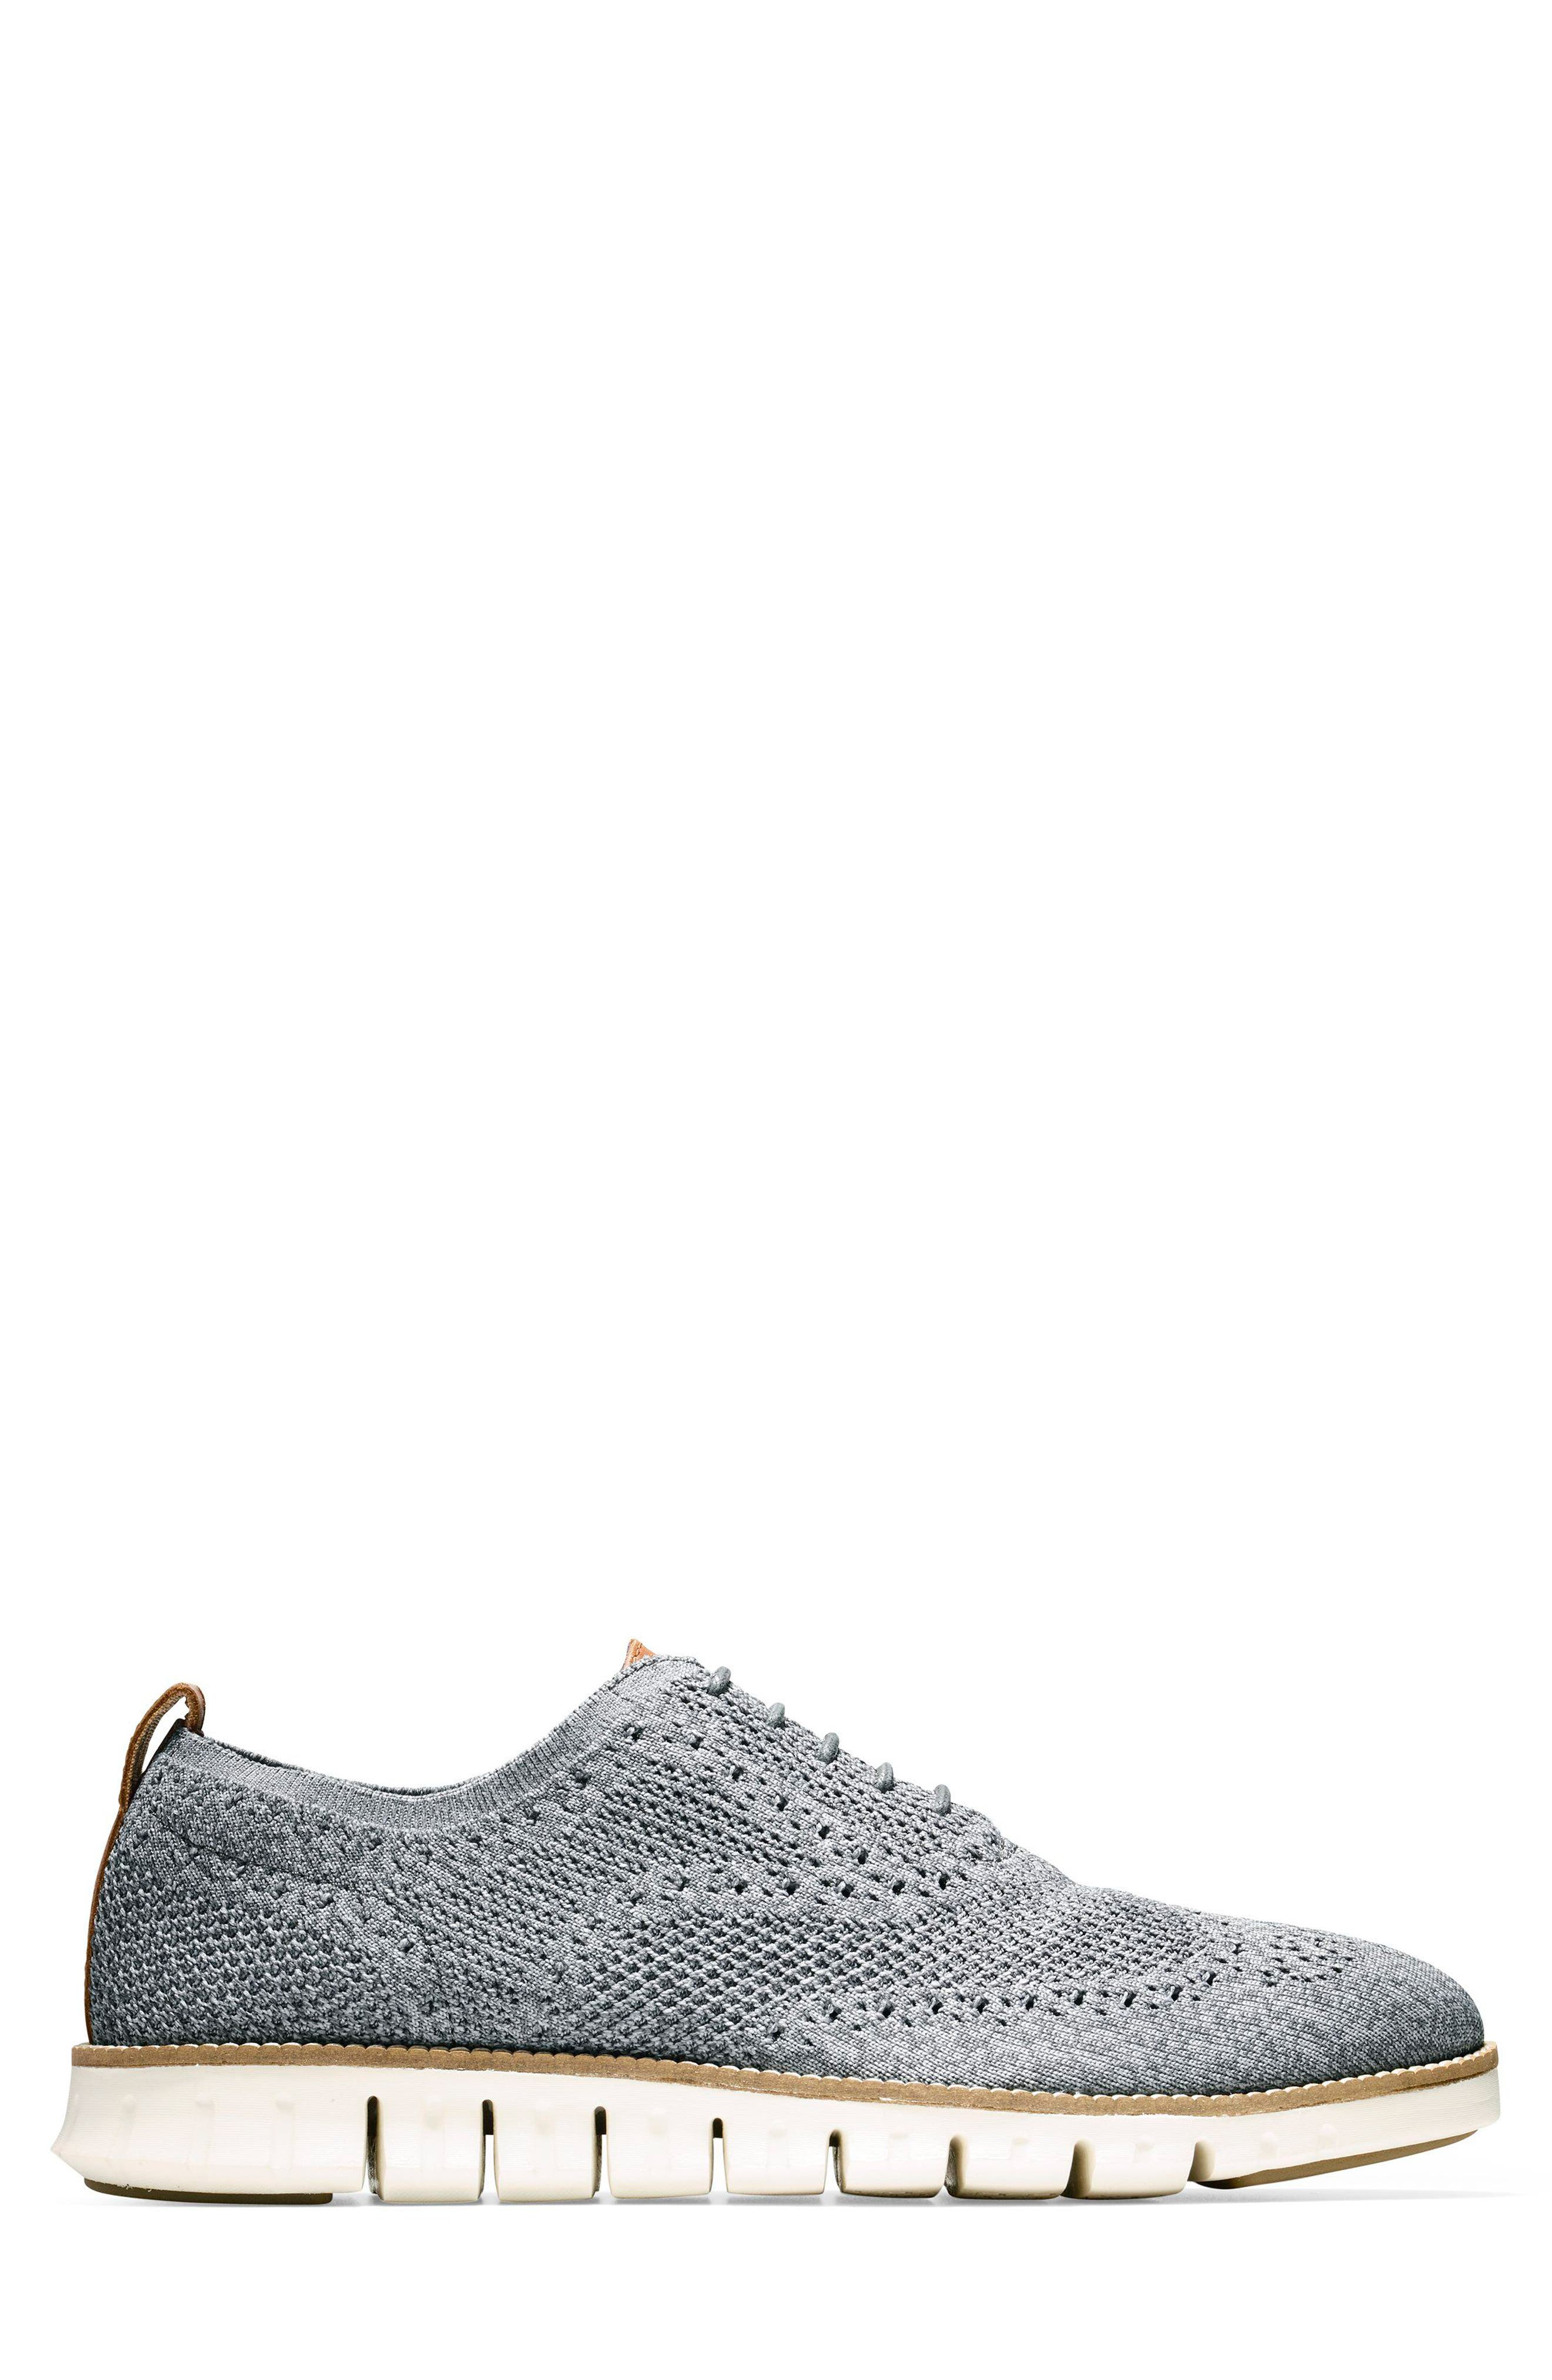 ZeroGrand Stitchlite Woven Wool Wingtip,                             Alternate thumbnail 3, color,                             IRONSTONE/ MAGNET/ IVORY